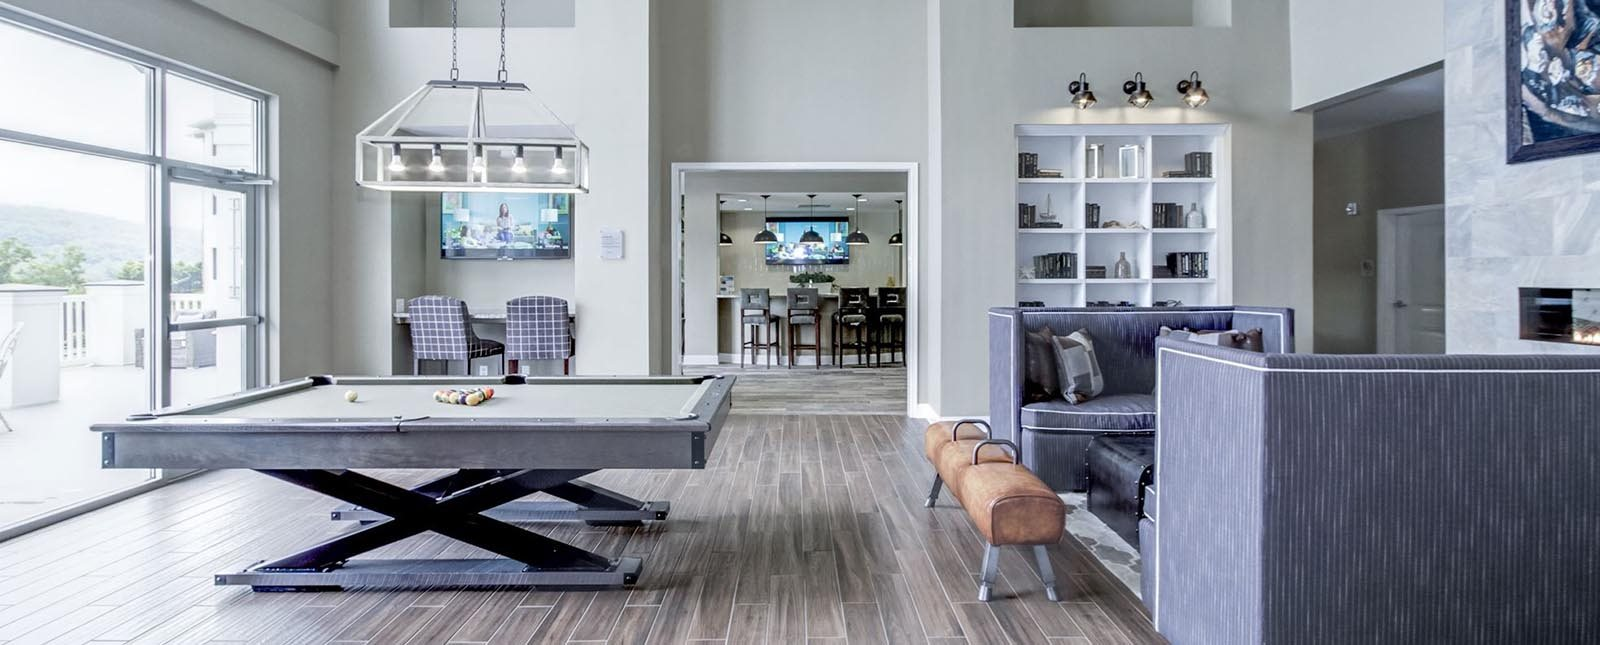 Clubhouse at The Haven luxury apartments in Malvern, PA